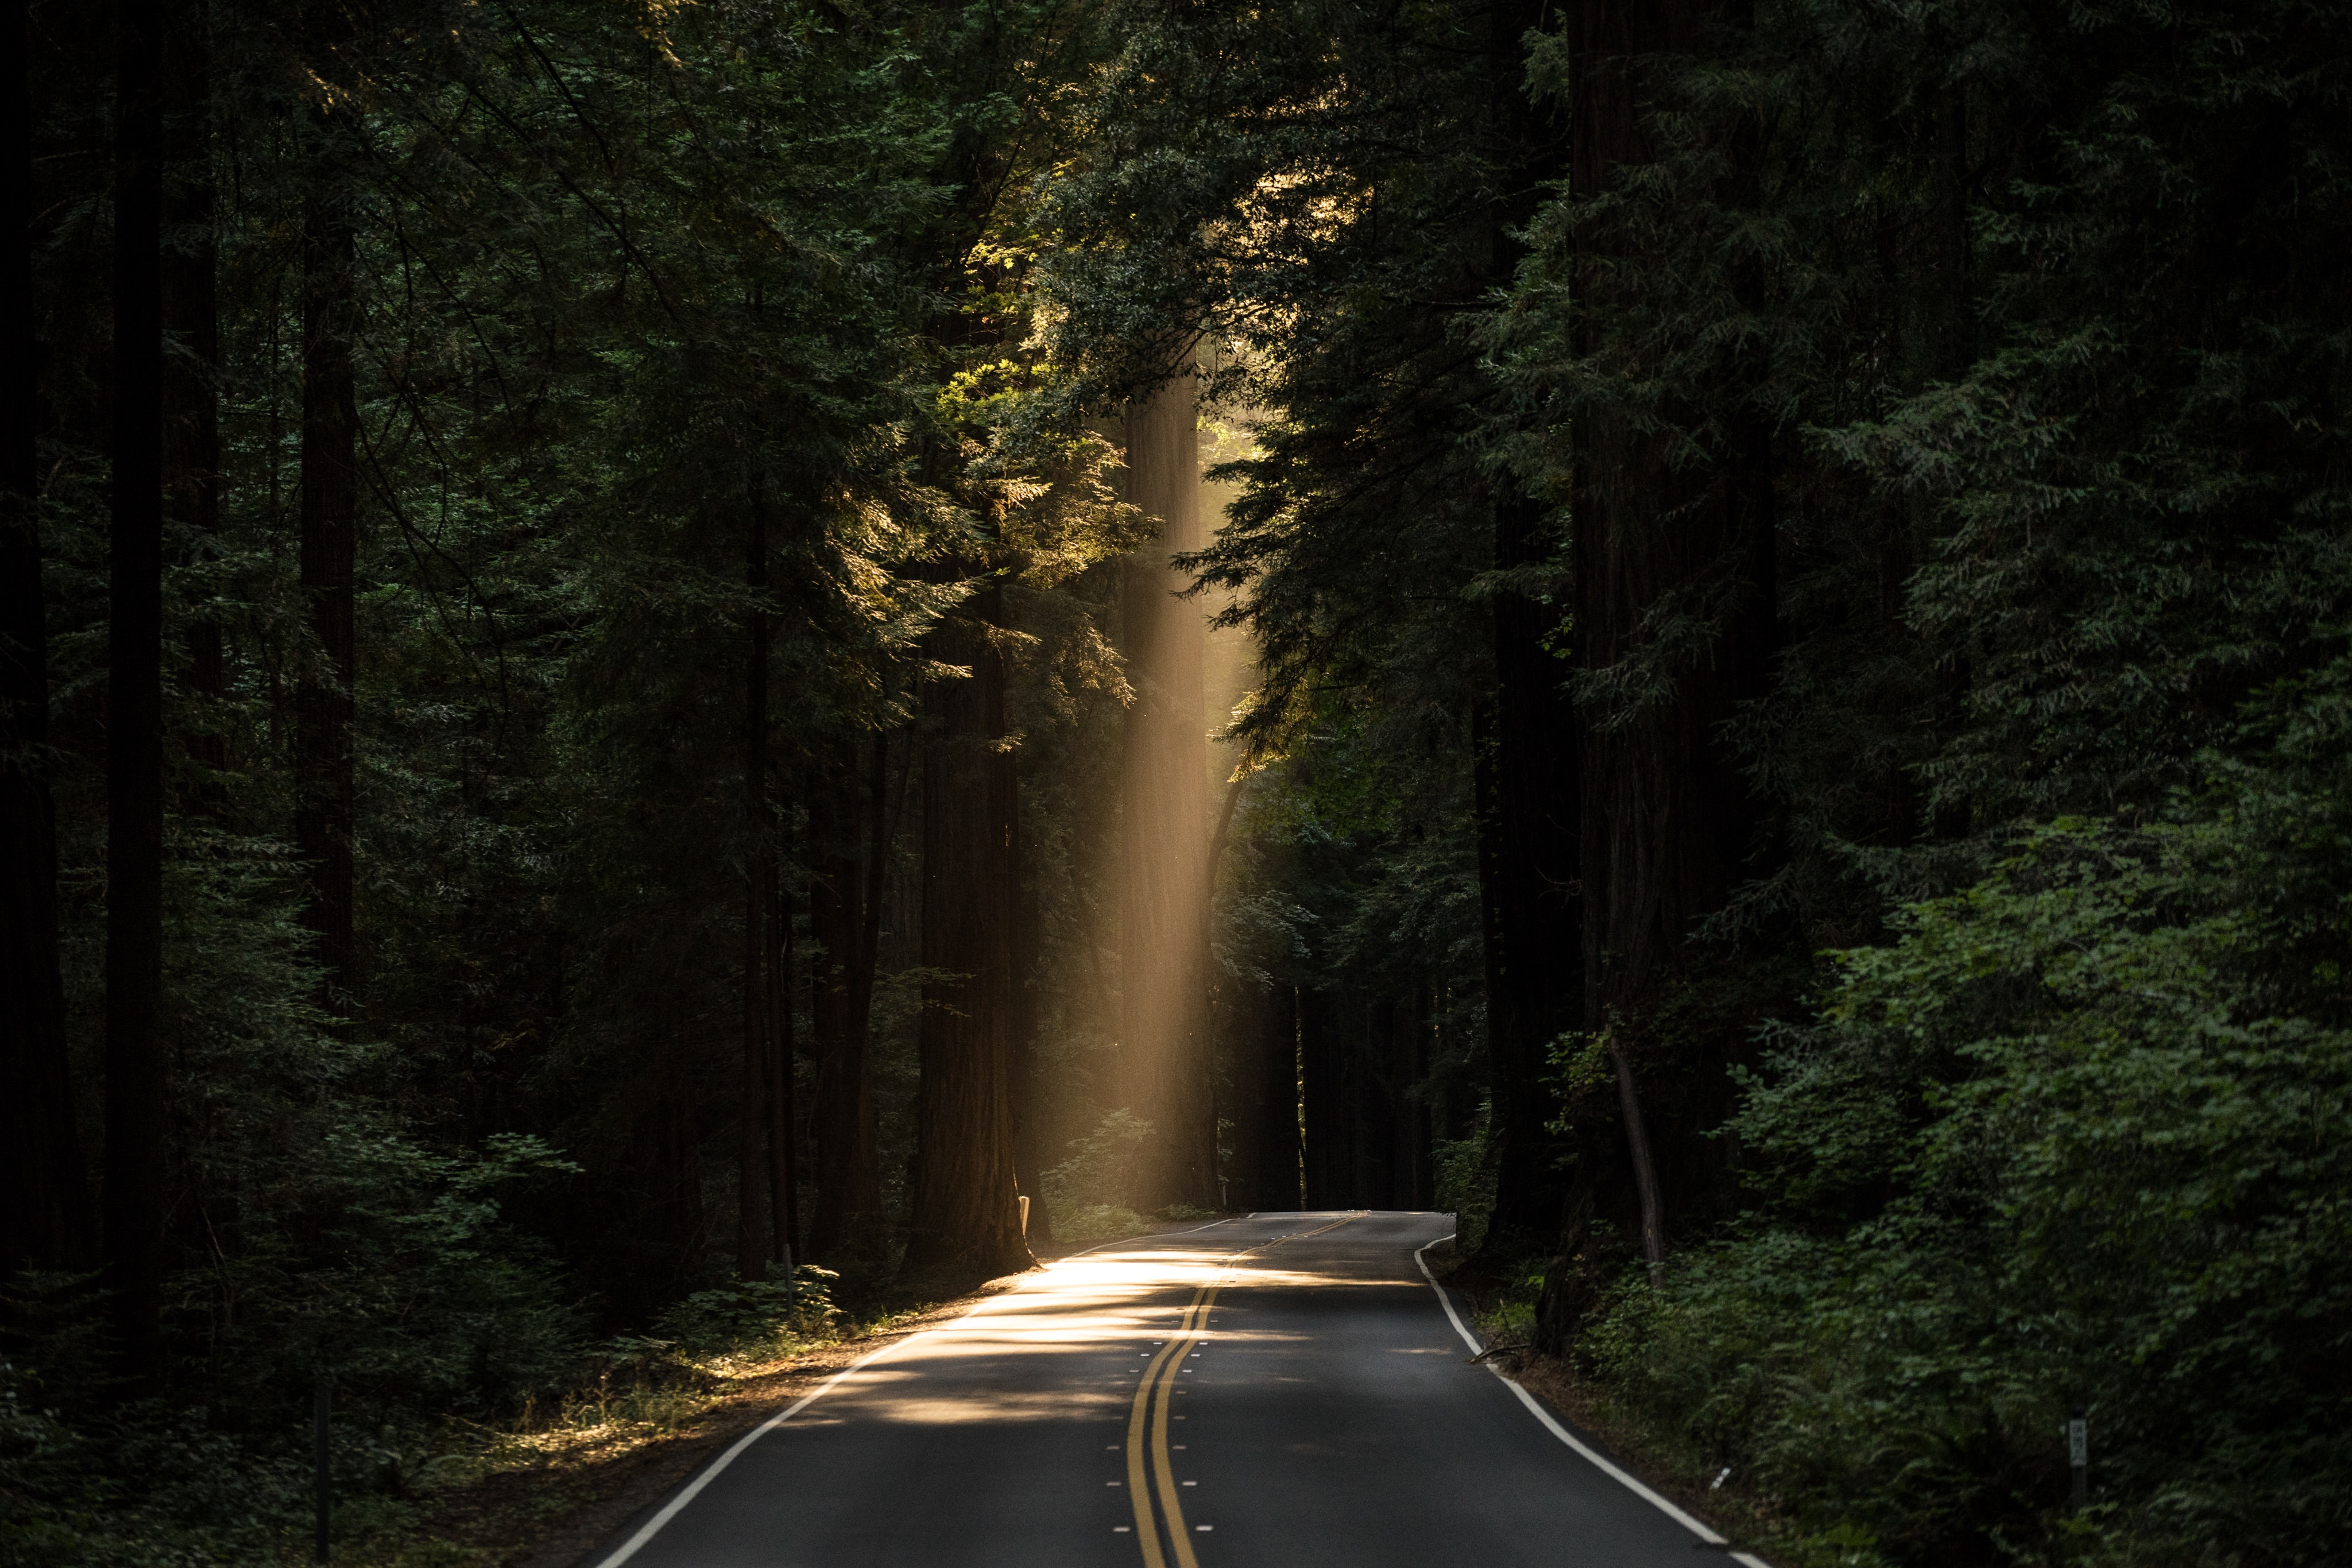 Sunbeam on the road, route, street, nature, trees, pines, pavement, sun